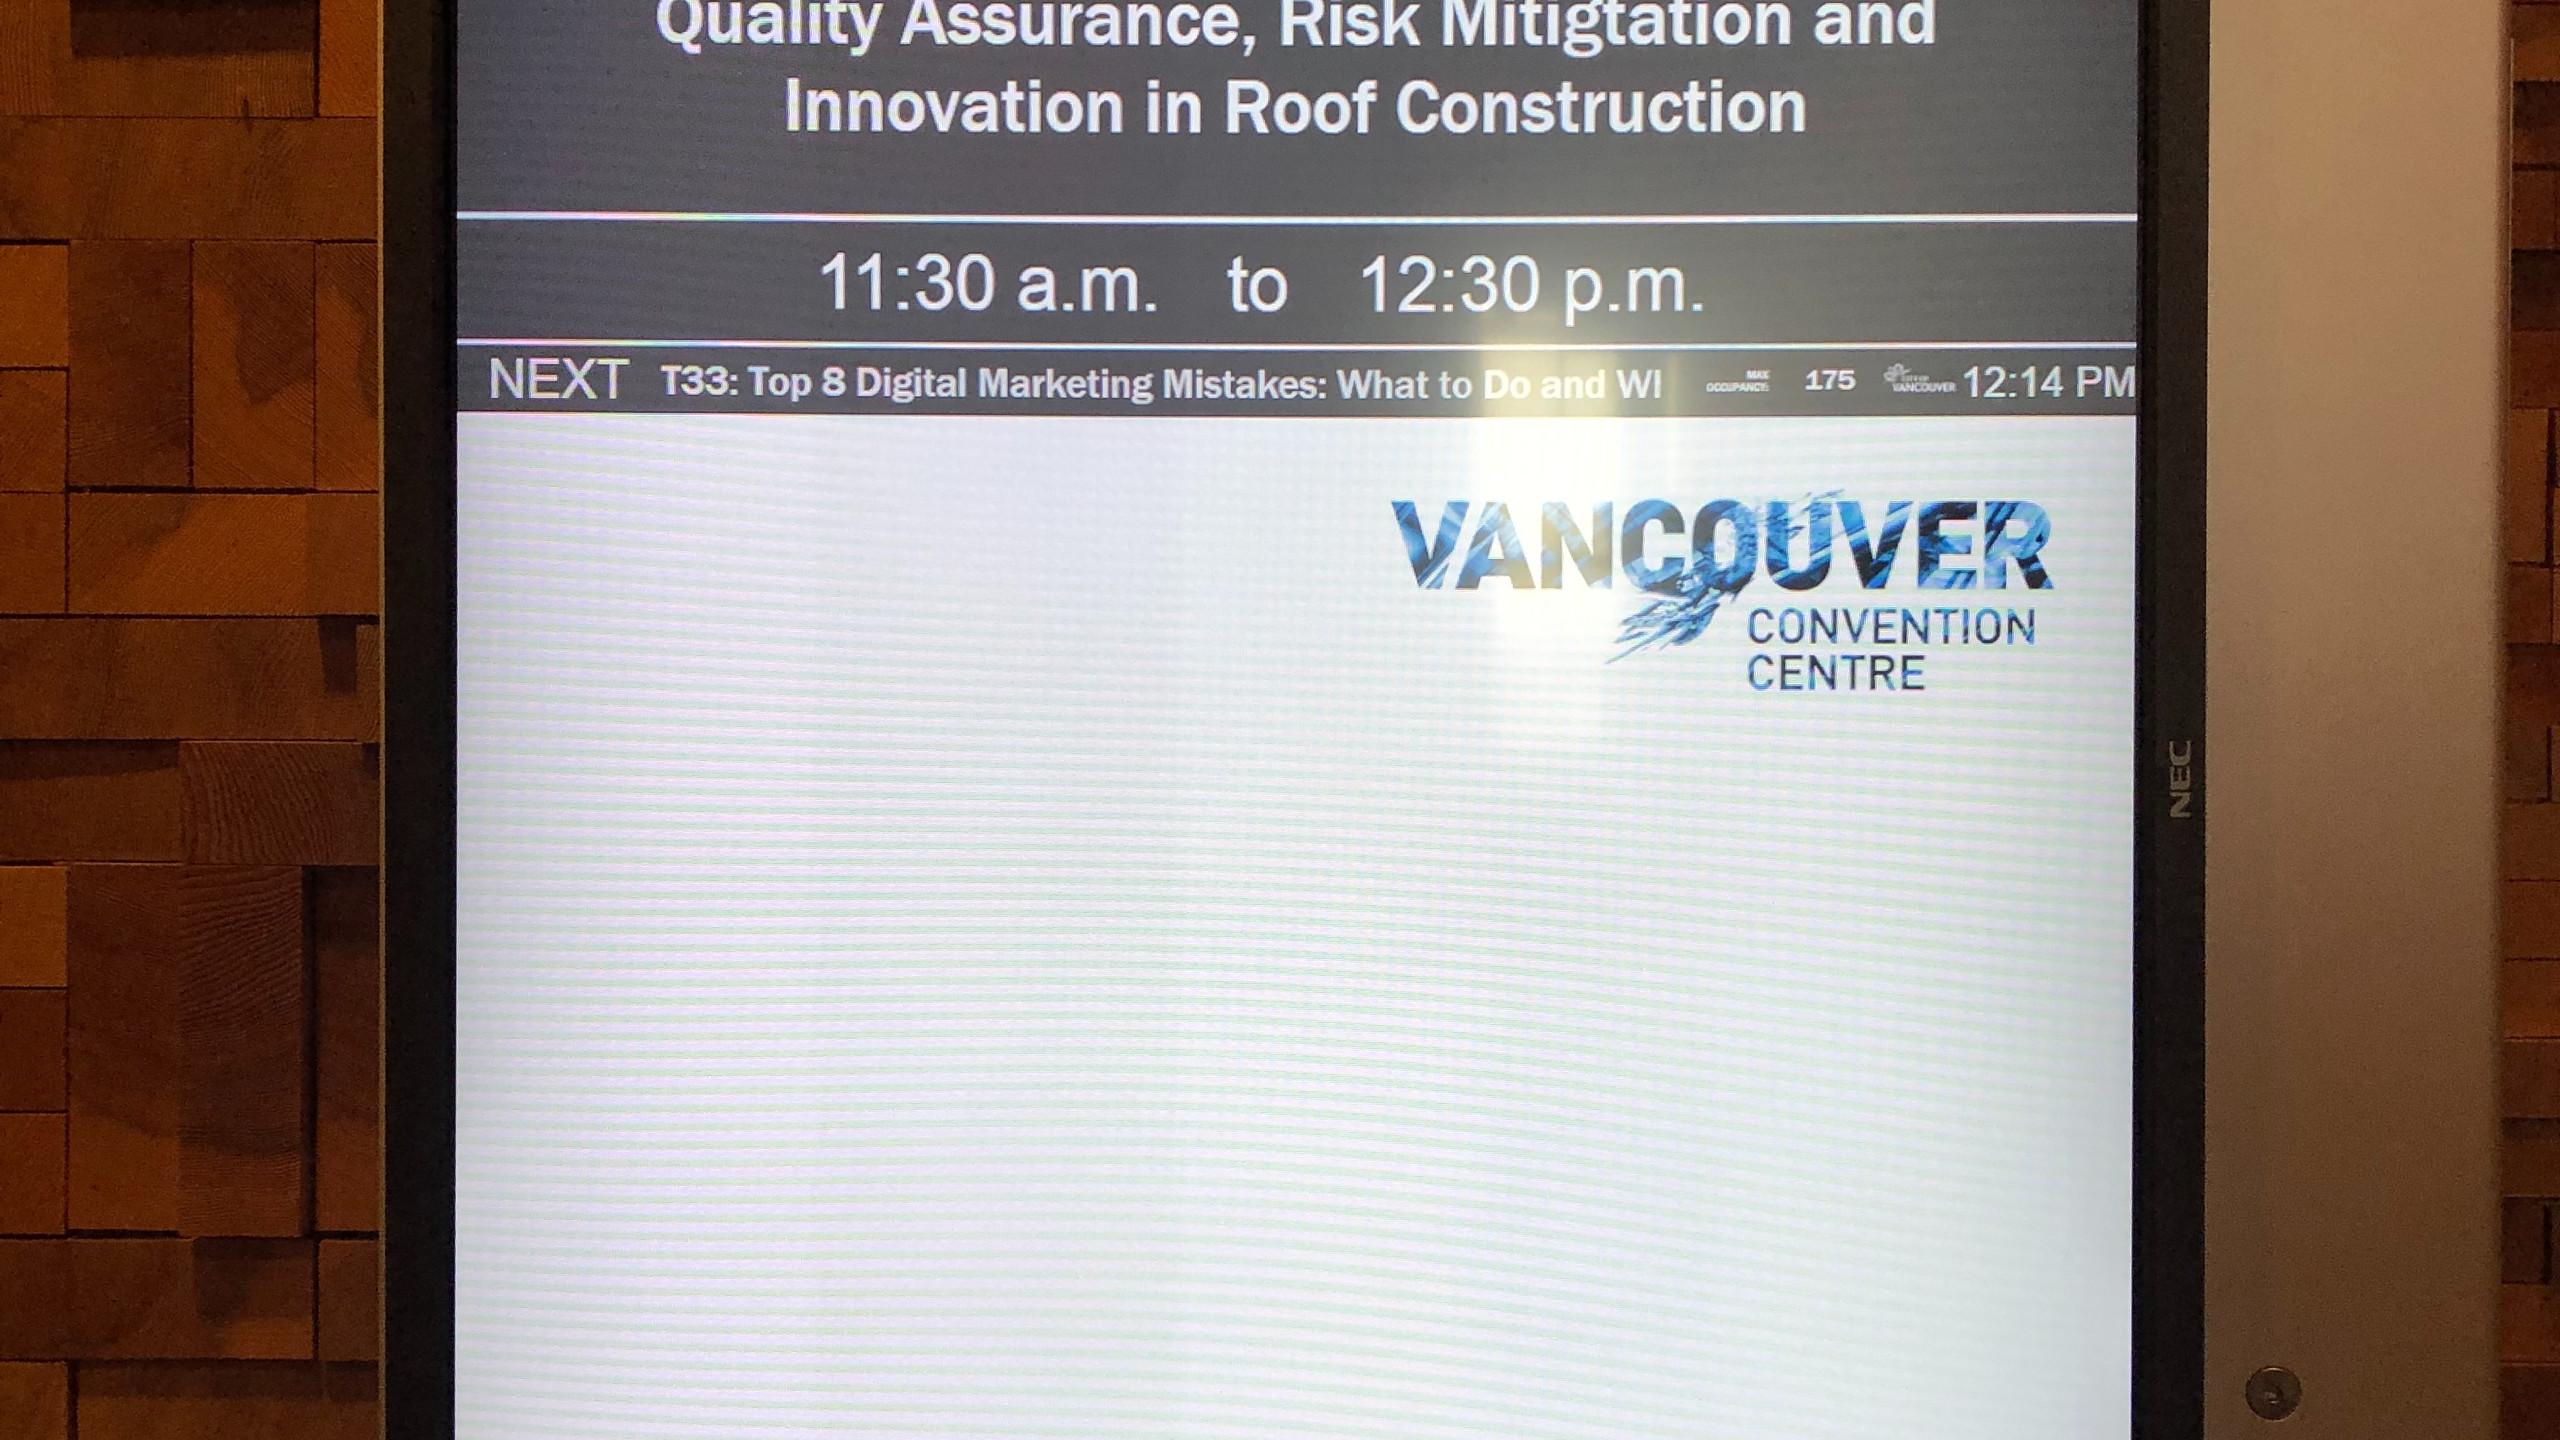 SMT and RCABC at BUILDEX 2019